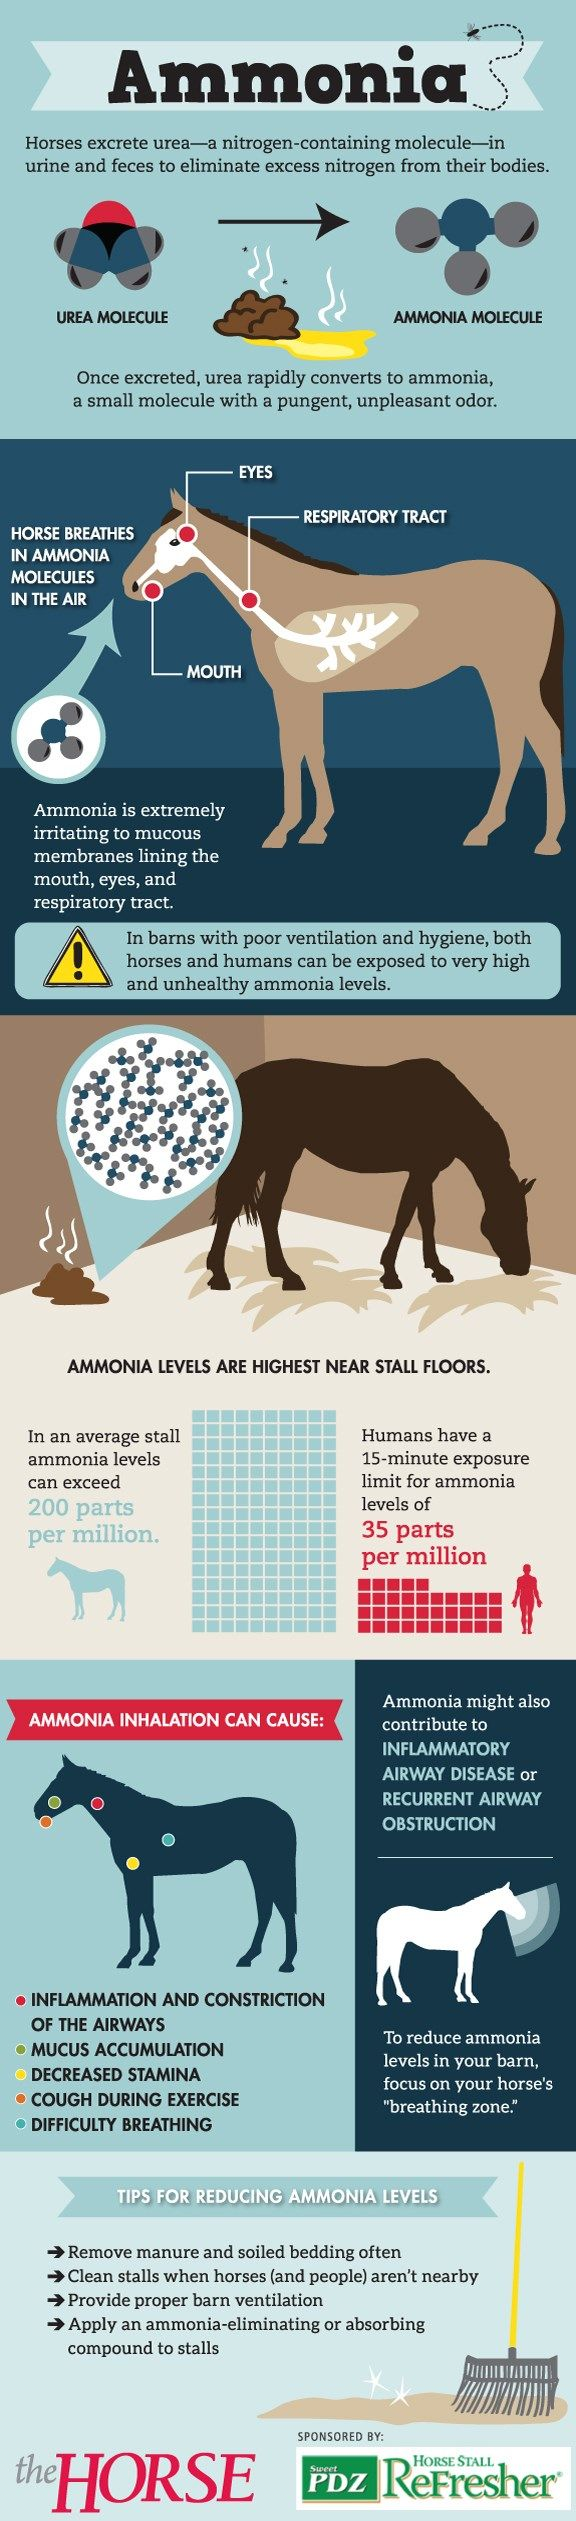 Have you ever walked into a barn and, rather than smelling fresh bedding and horses, you get a strong whiff of a pungent, burning odor? That's ammonia, and its presence can cause serious damage to your horse's respiratory system.  http://www.thehorse.com/articles/33322/infographic-how-ammonia-impacts-your-horse